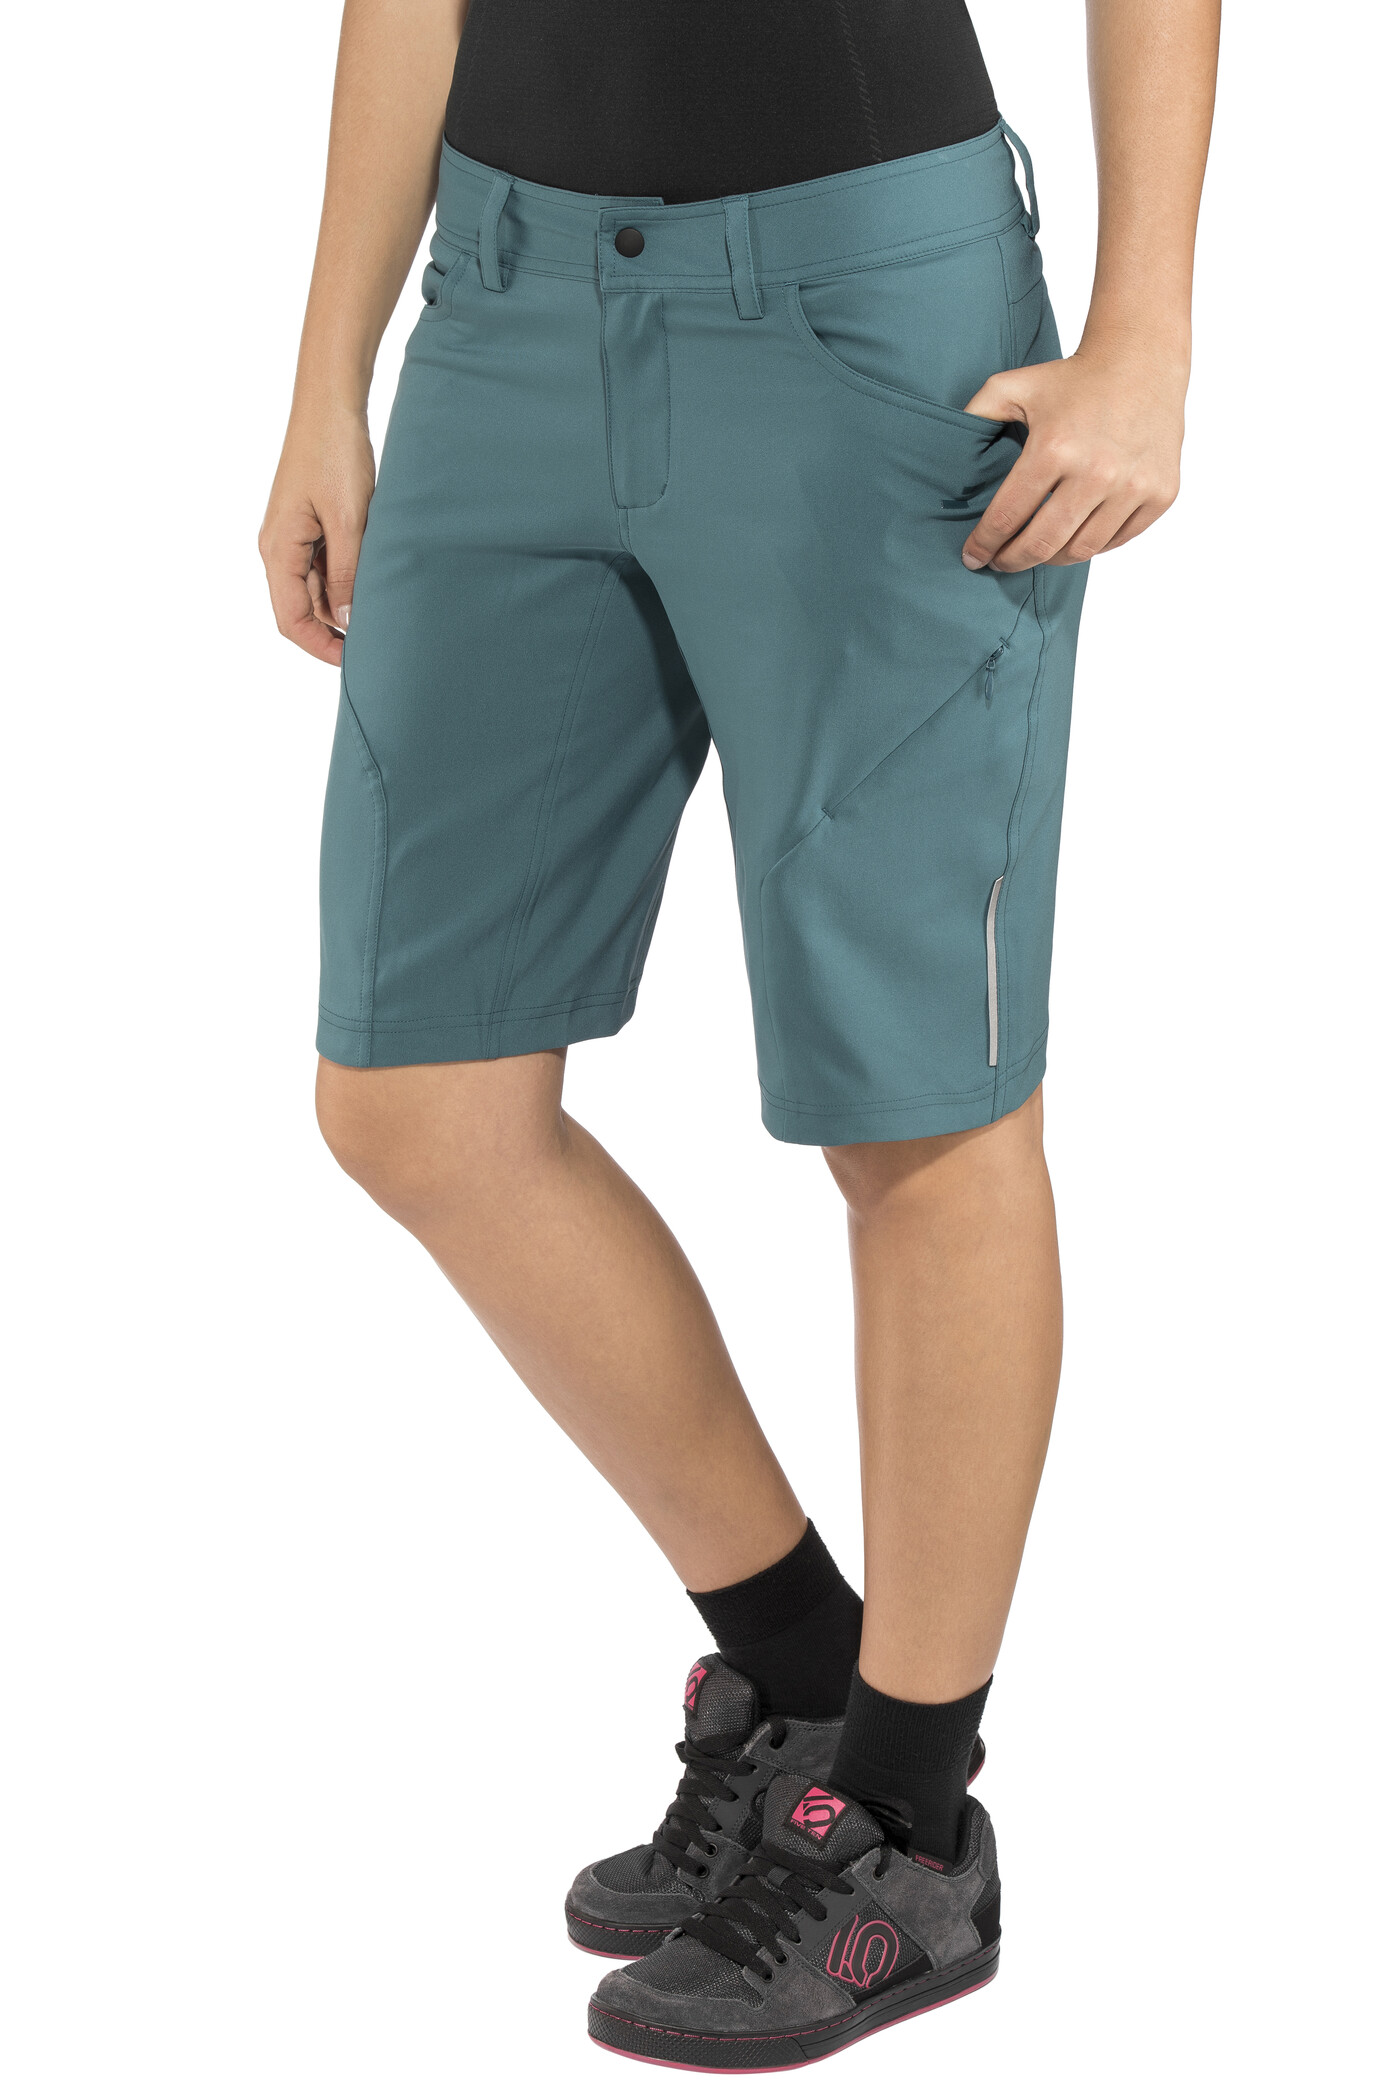 SQUARE Active Cykelbukser Damer, petrol (2020) | Trousers